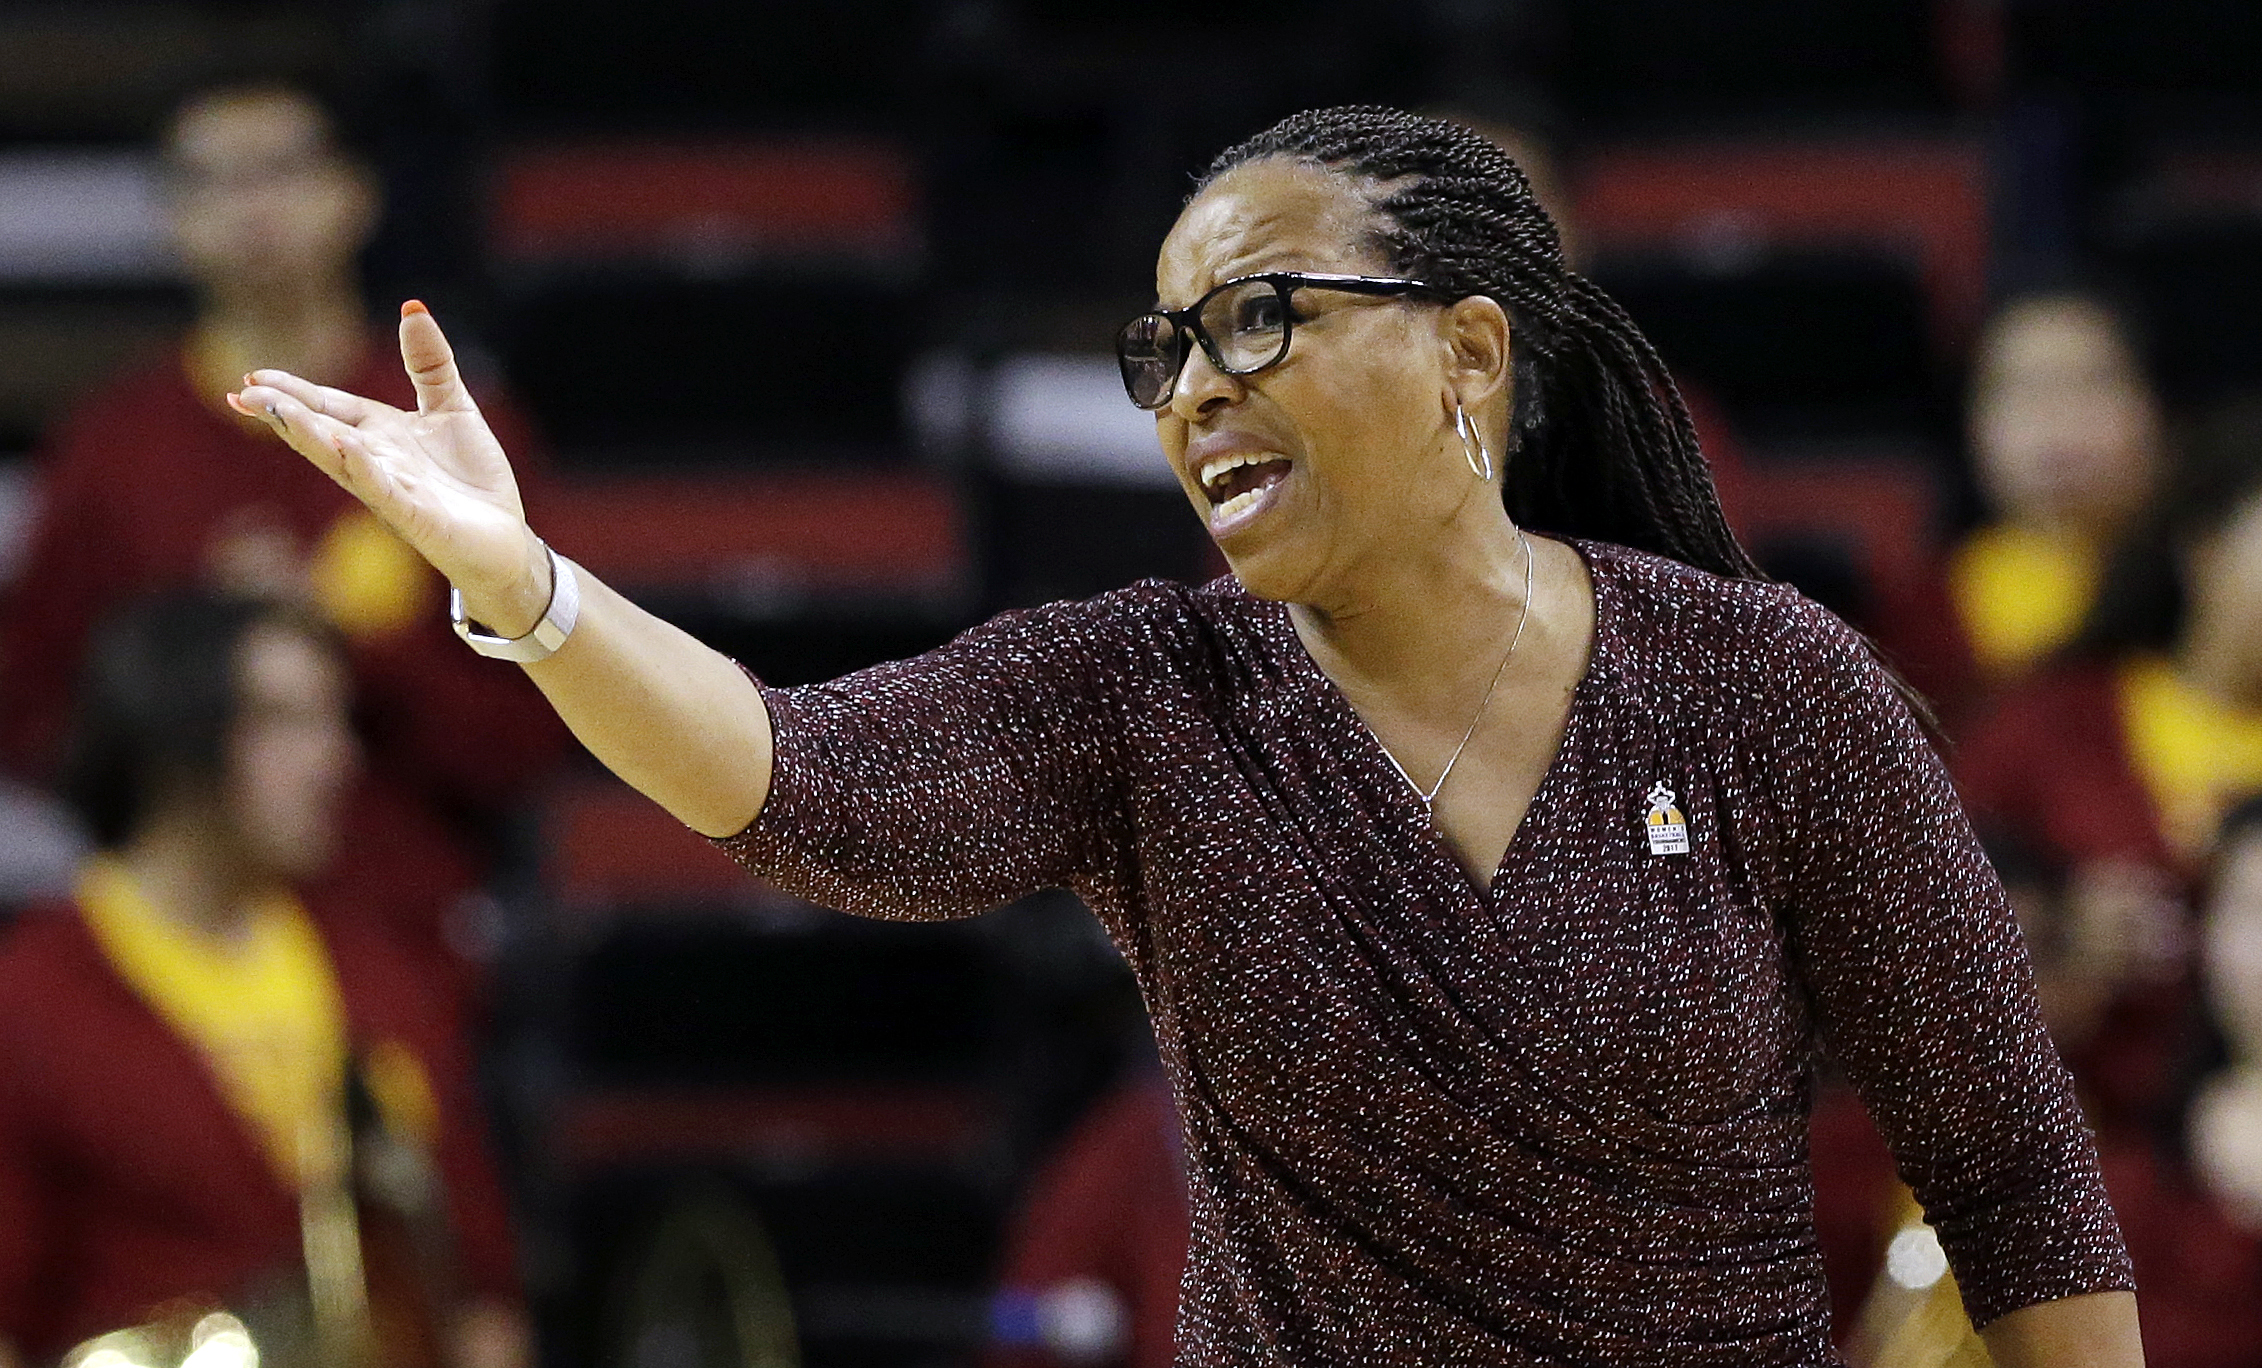 FILE - In this Thursday, March 2, 2017, file photo, Southern California head coach Cynthia Cooper-Dyke directs her team against California in an NCAA college basketball game in the Pac-12 Conference tournament  in Seattle. Cooper-Dyke resigned on Friday,